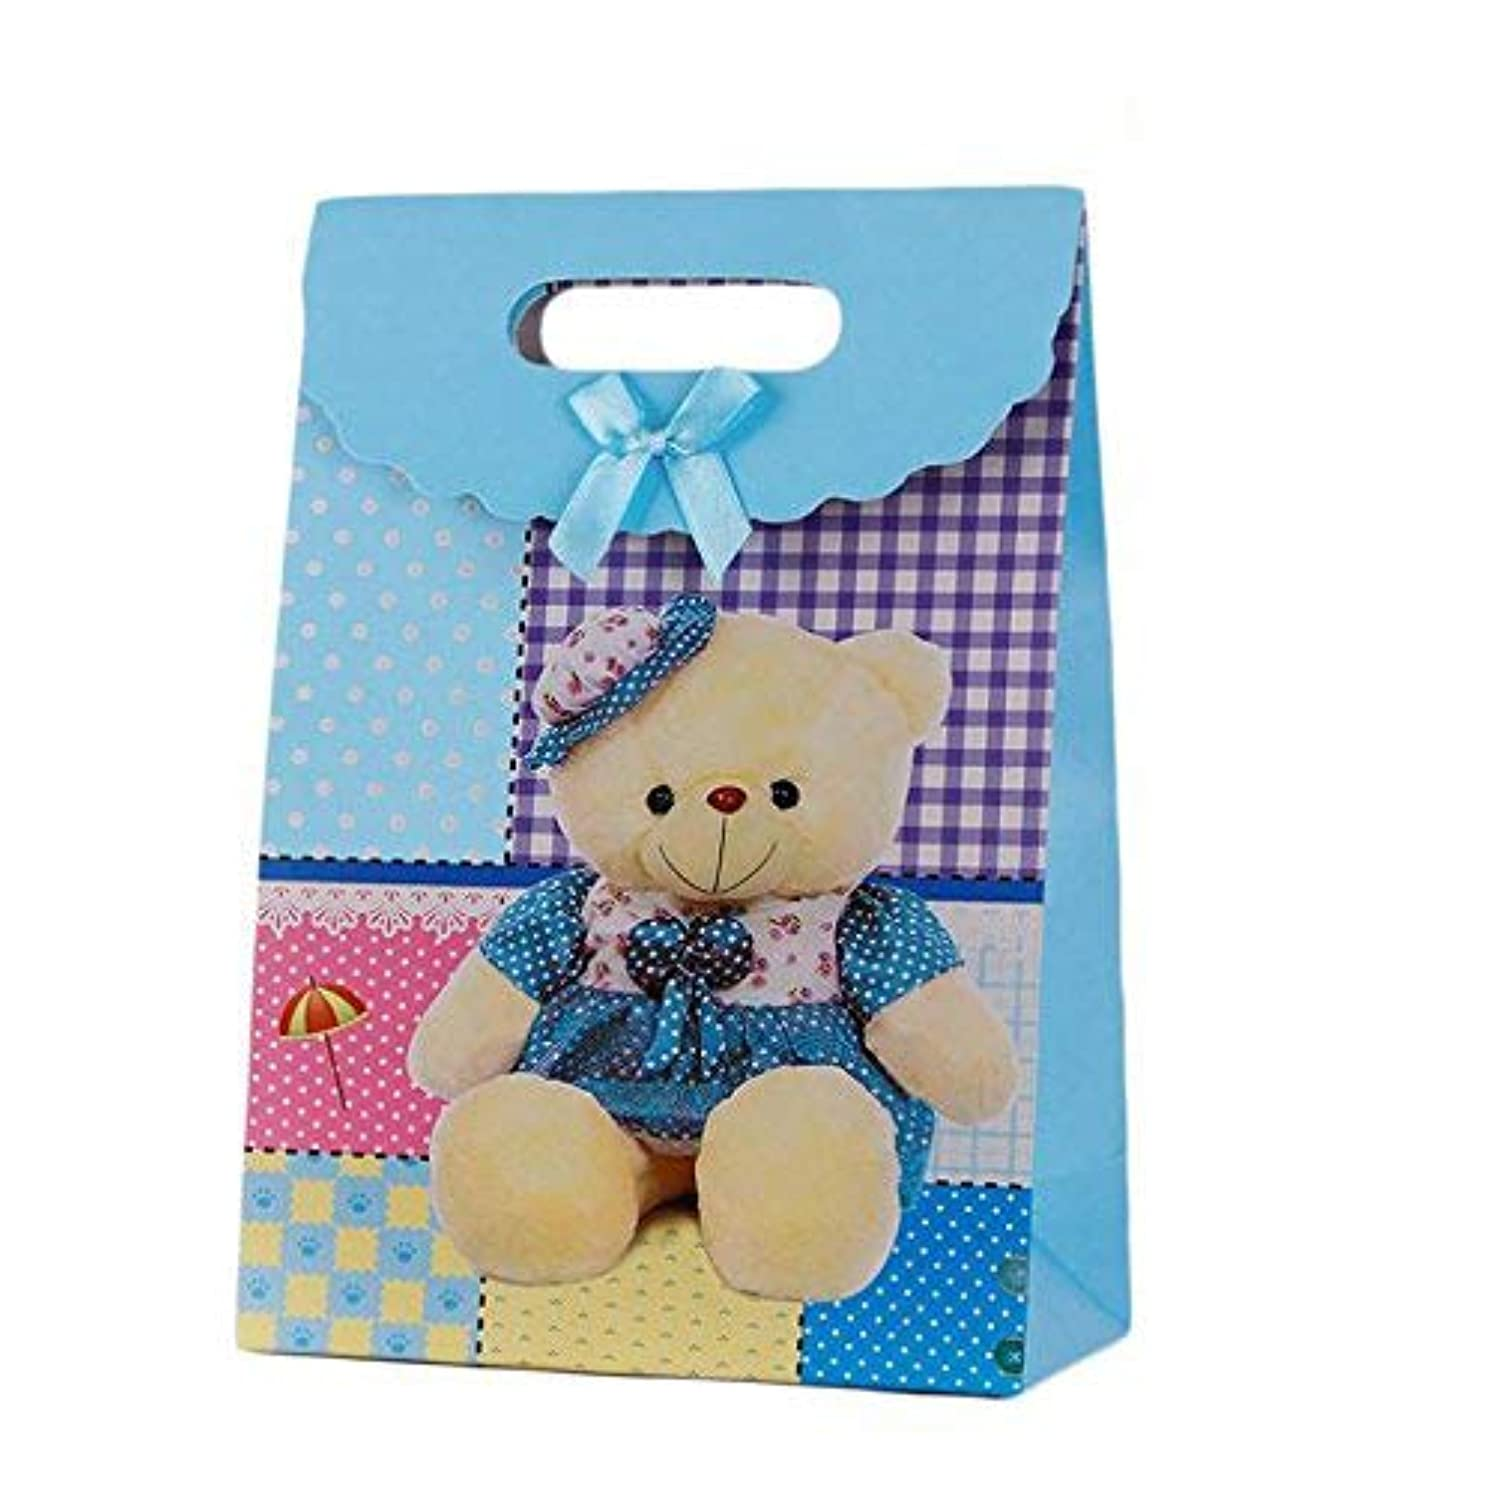 SumDirect 12Pcs Paperboard Stand Up Bear Party Gift Bags with Bow and Magic Tape for Birthday Favors, Gifts, Decoration, Arts & Crafts, Event Supplies and Christmas (Small, Bear)